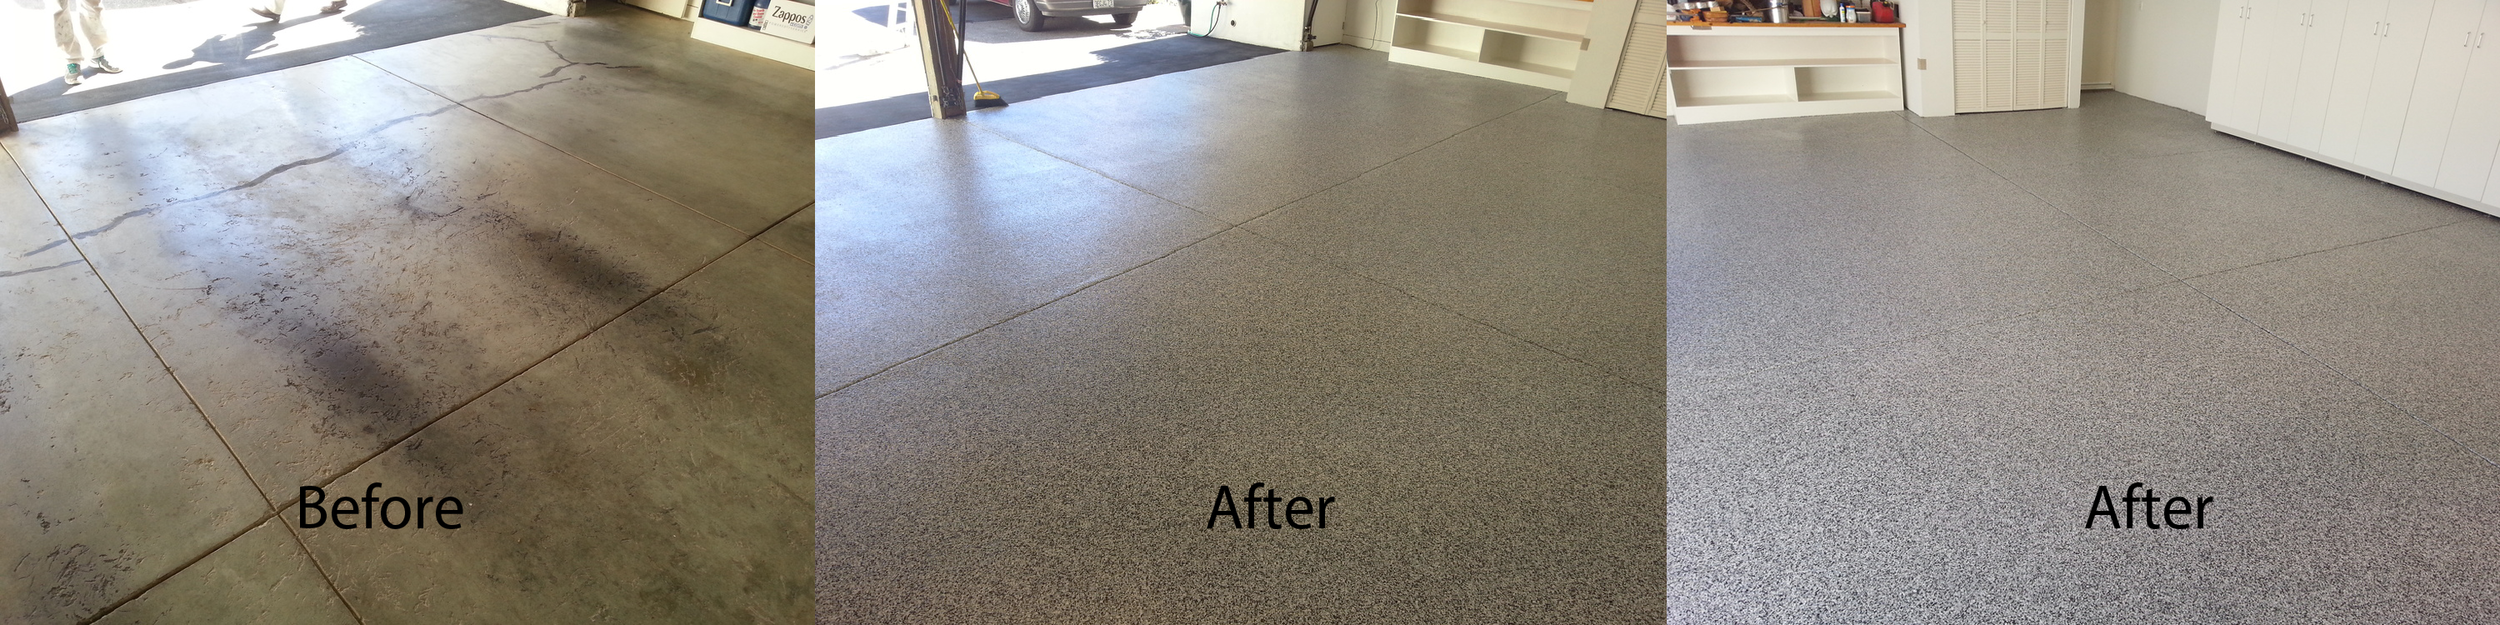 keech-painting-epoxy-garage-floor-before-after.png